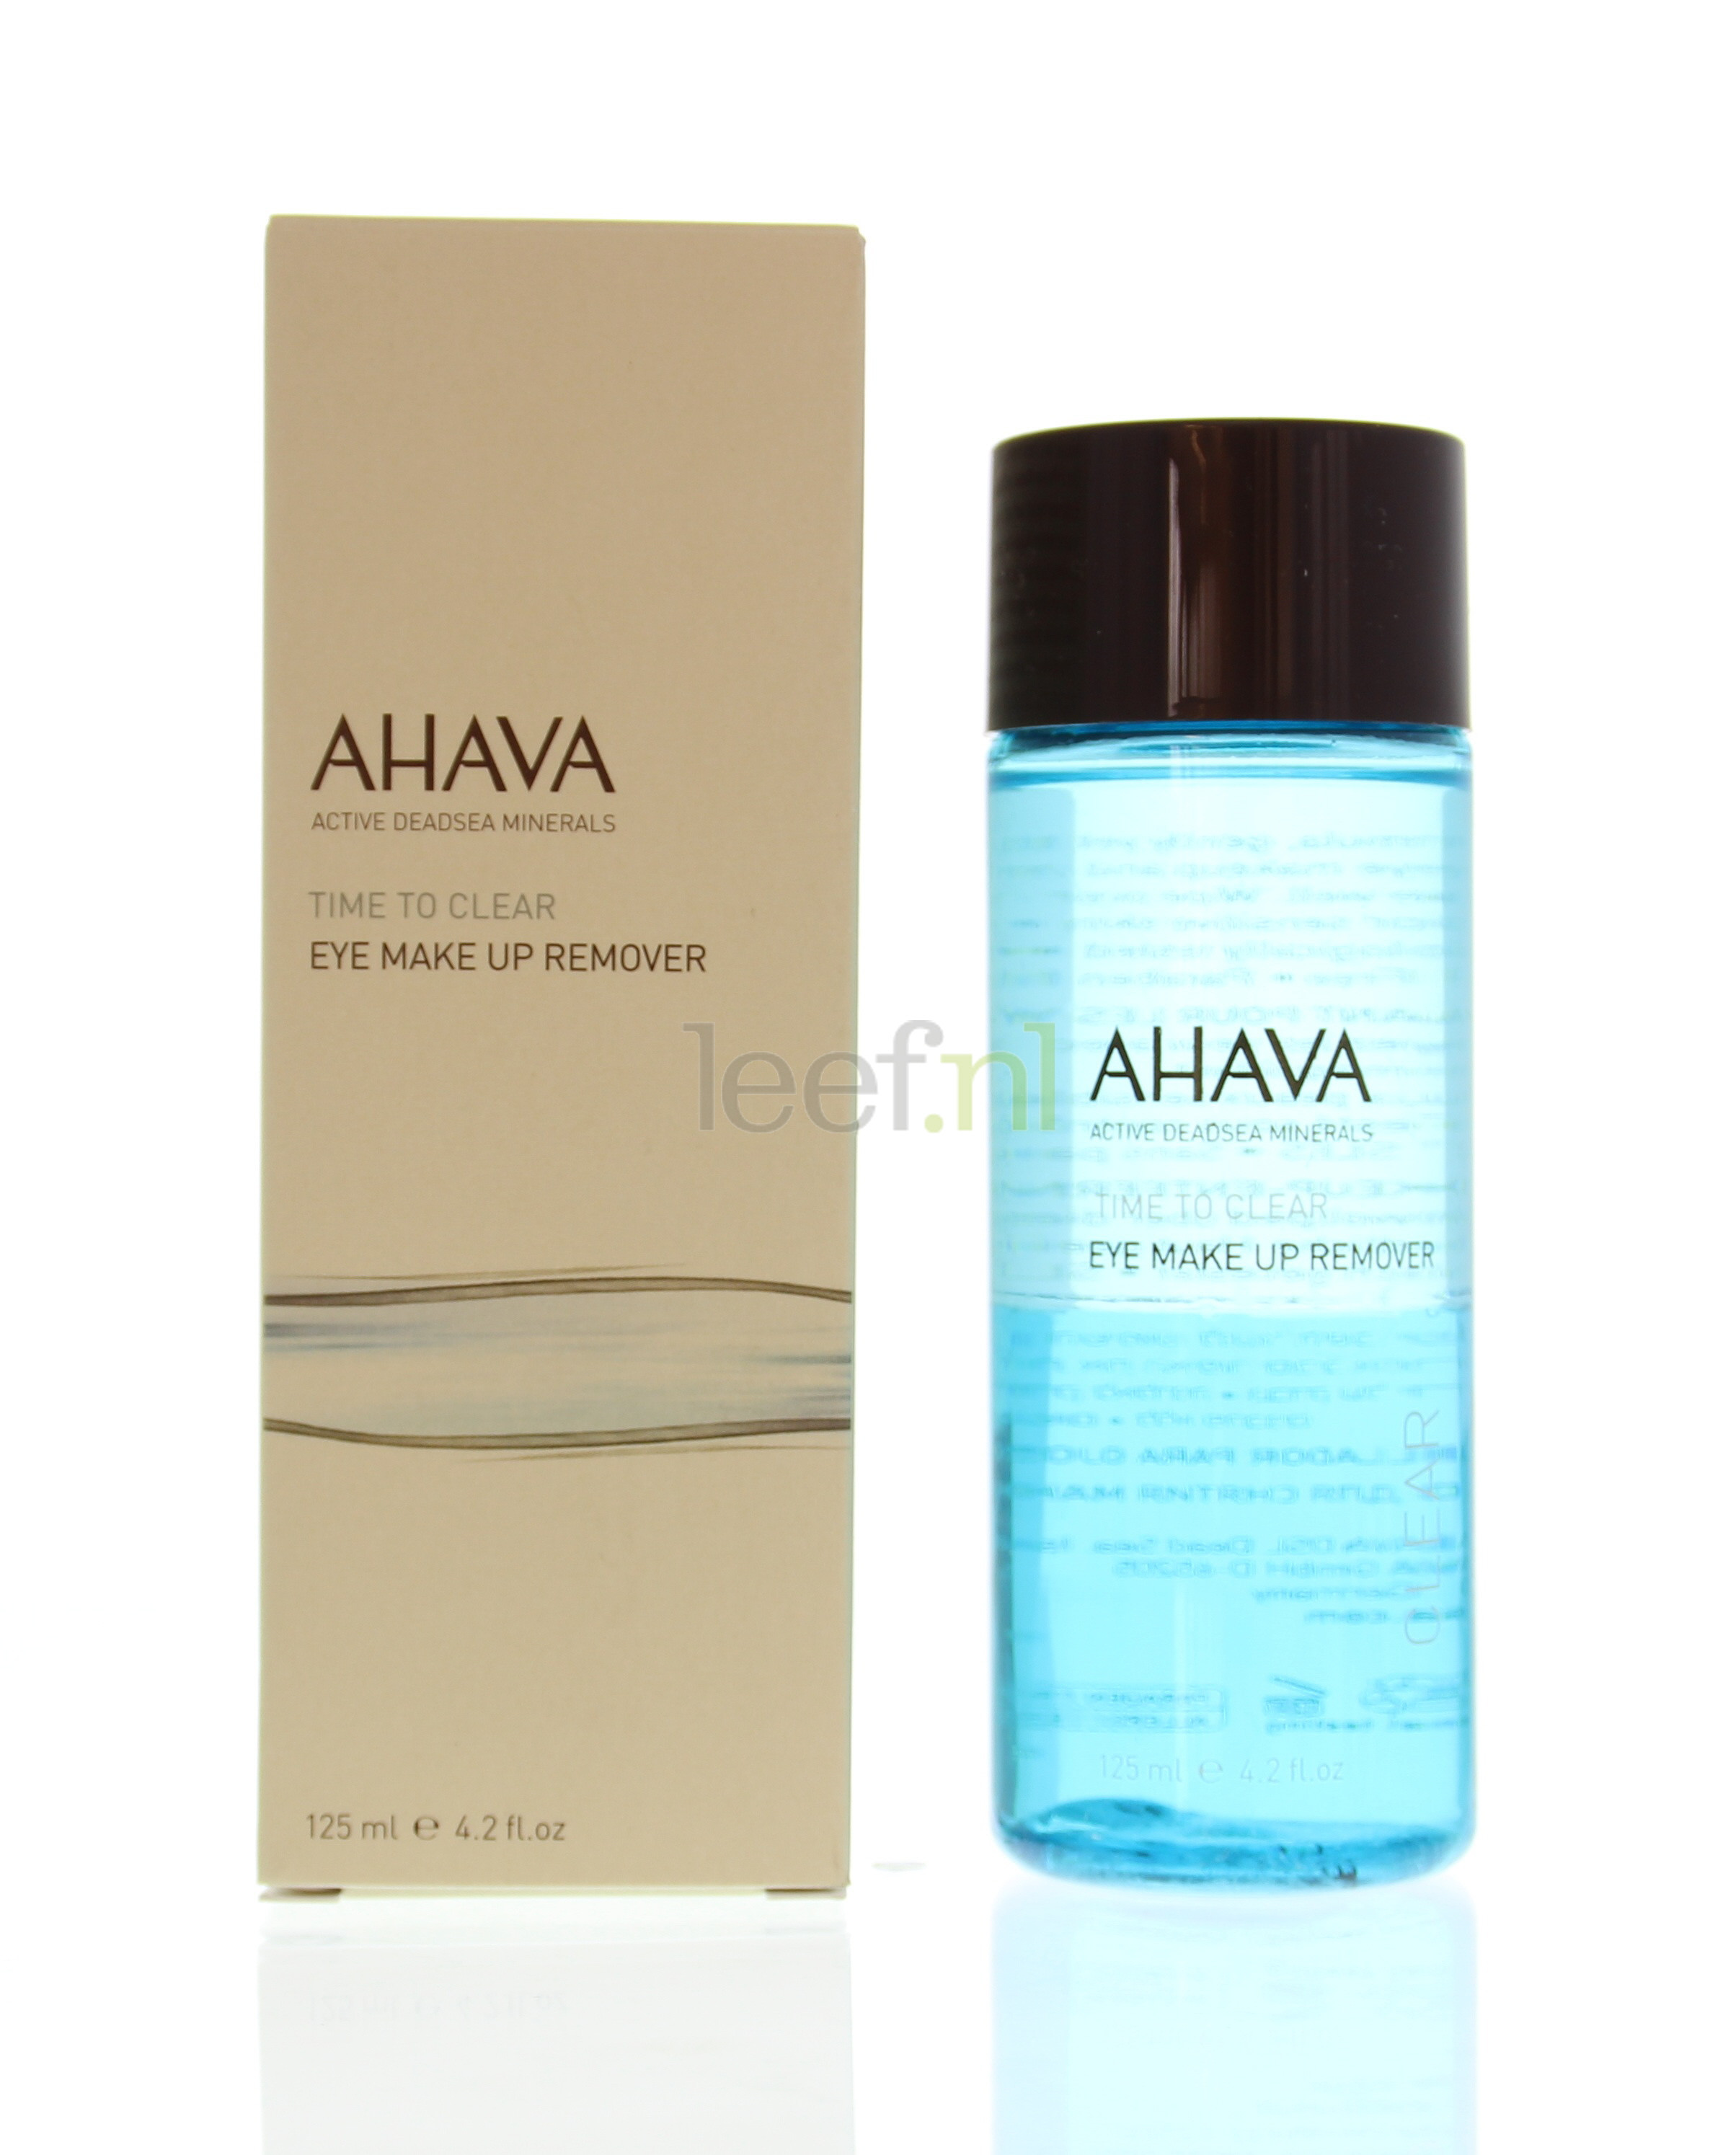 AHAVA Eye Make Up Remover